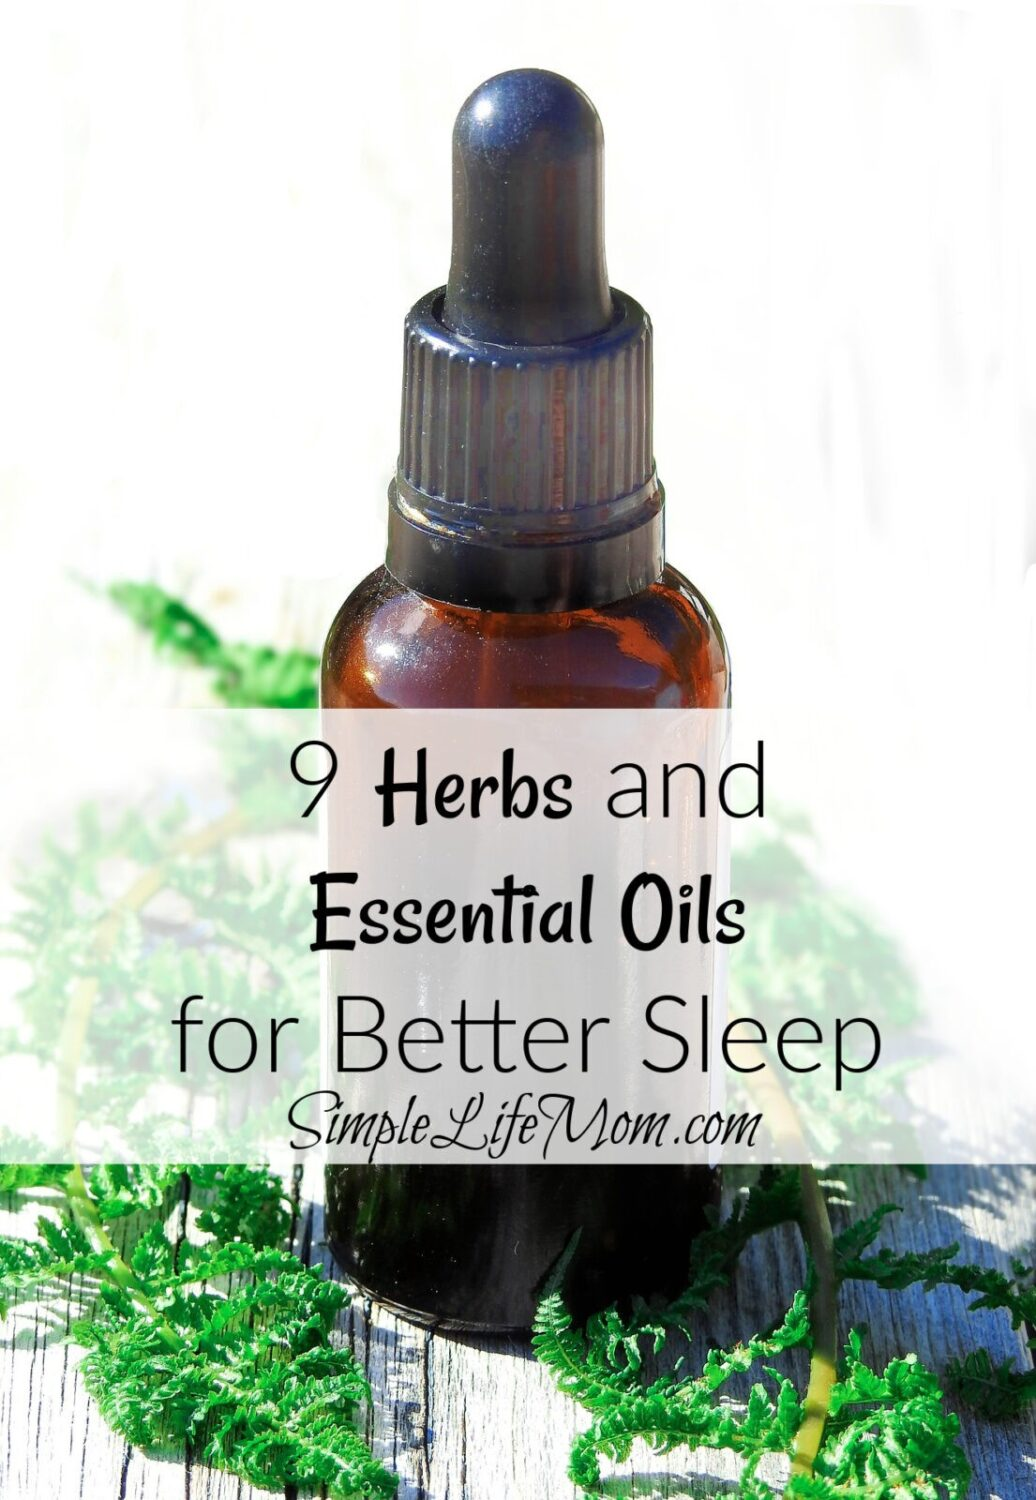 9 Herbs and Essential Oils for Sleep from Simple Life Mom